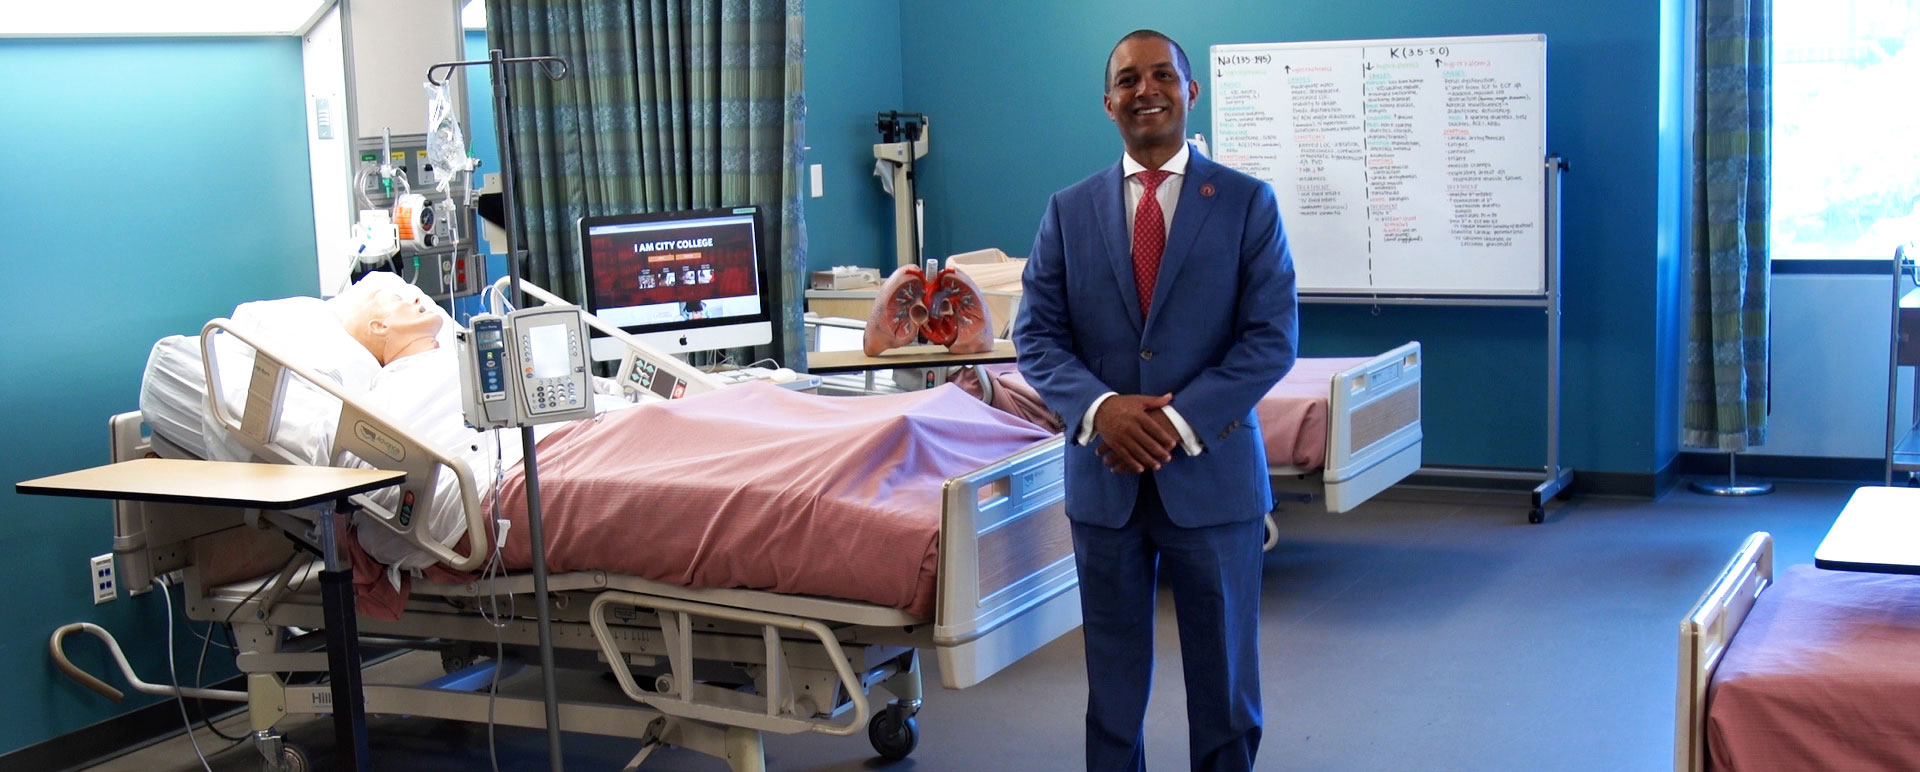 San Diego City College President Ricky Shabazz in a medical training room.